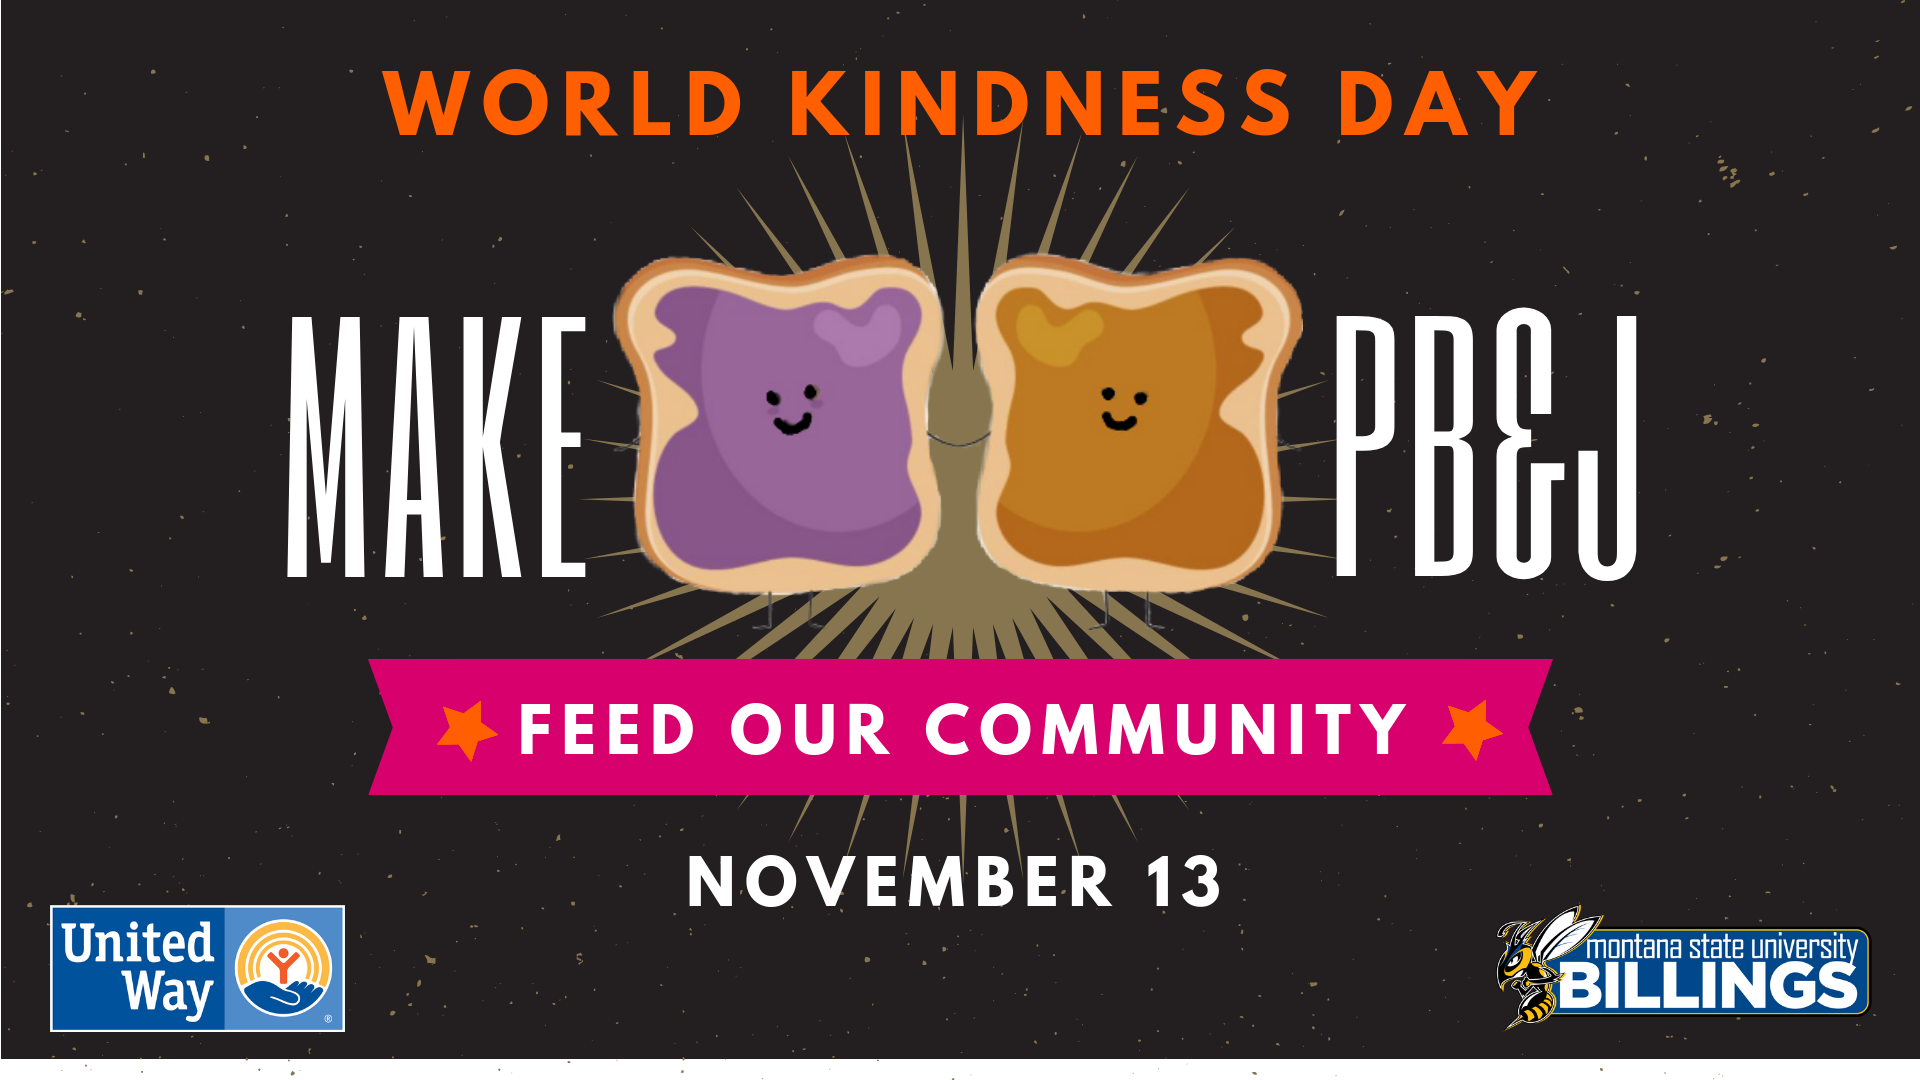 WORLD KINDNESS DAY MAKE PB&J FEED OUR COMMUNITY NOVEMBER 13 MSUBILLINGS.EDU/ENGAGEMENT